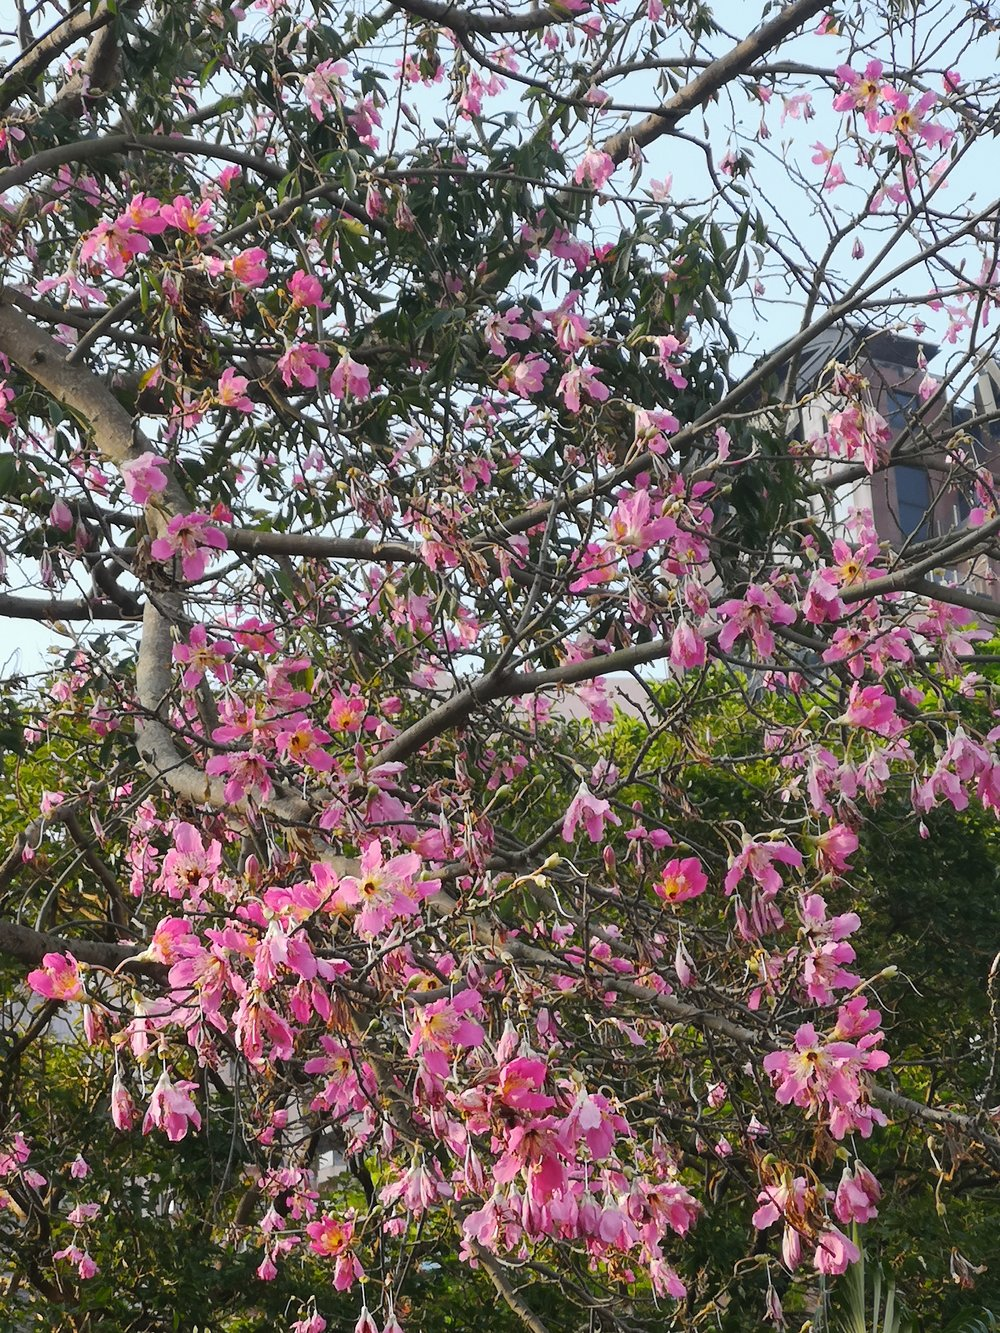 Hong Kong's flower, the Bauhinia, at the end of the season.